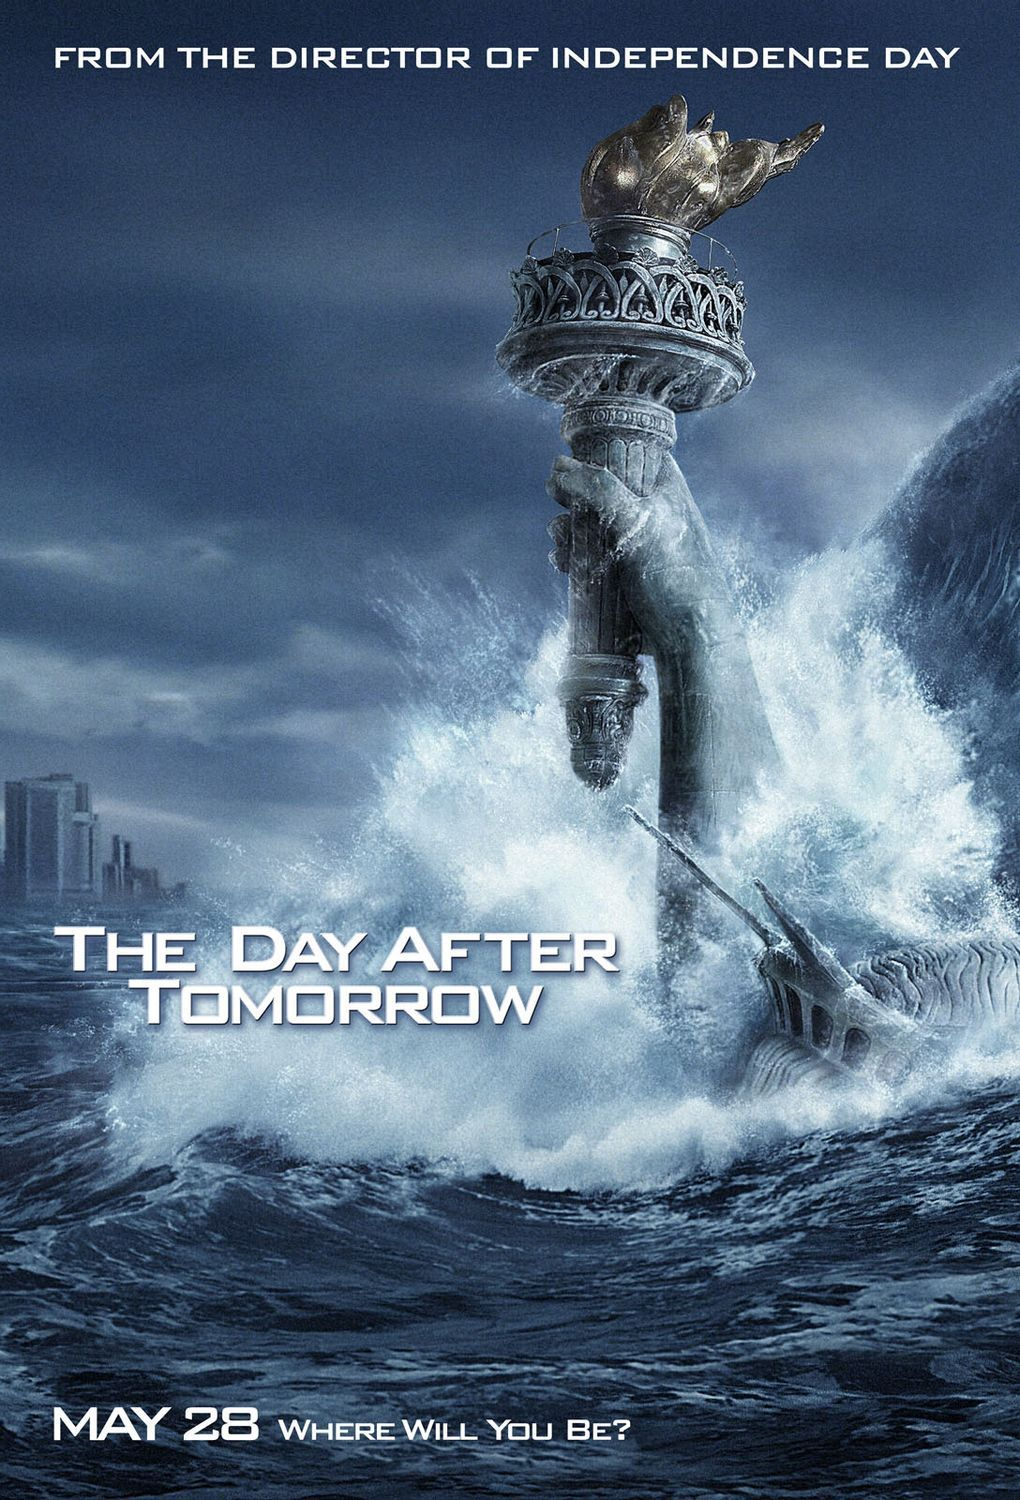 I Day After Tomorrow er endringene i havsirkulasjon urealistisk hurtige. (Foto: Twentieth Century Fox Norway)